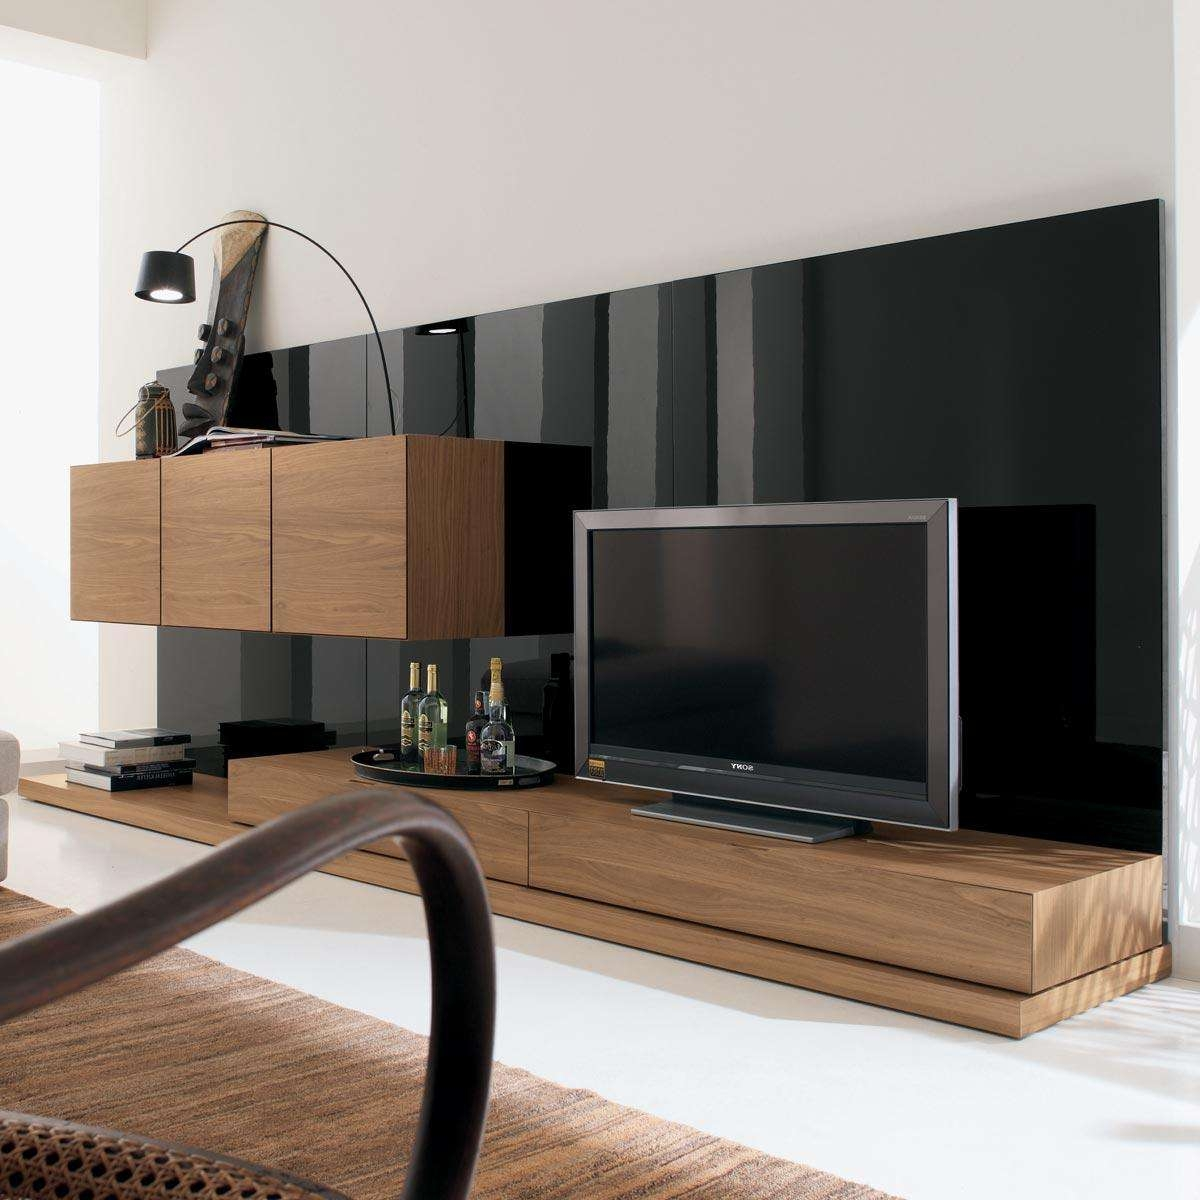 Modern Nature Wood Big Screen Tv Stand Wall Mounted Living Room For Modular Tv Stands Furniture (View 2 of 15)